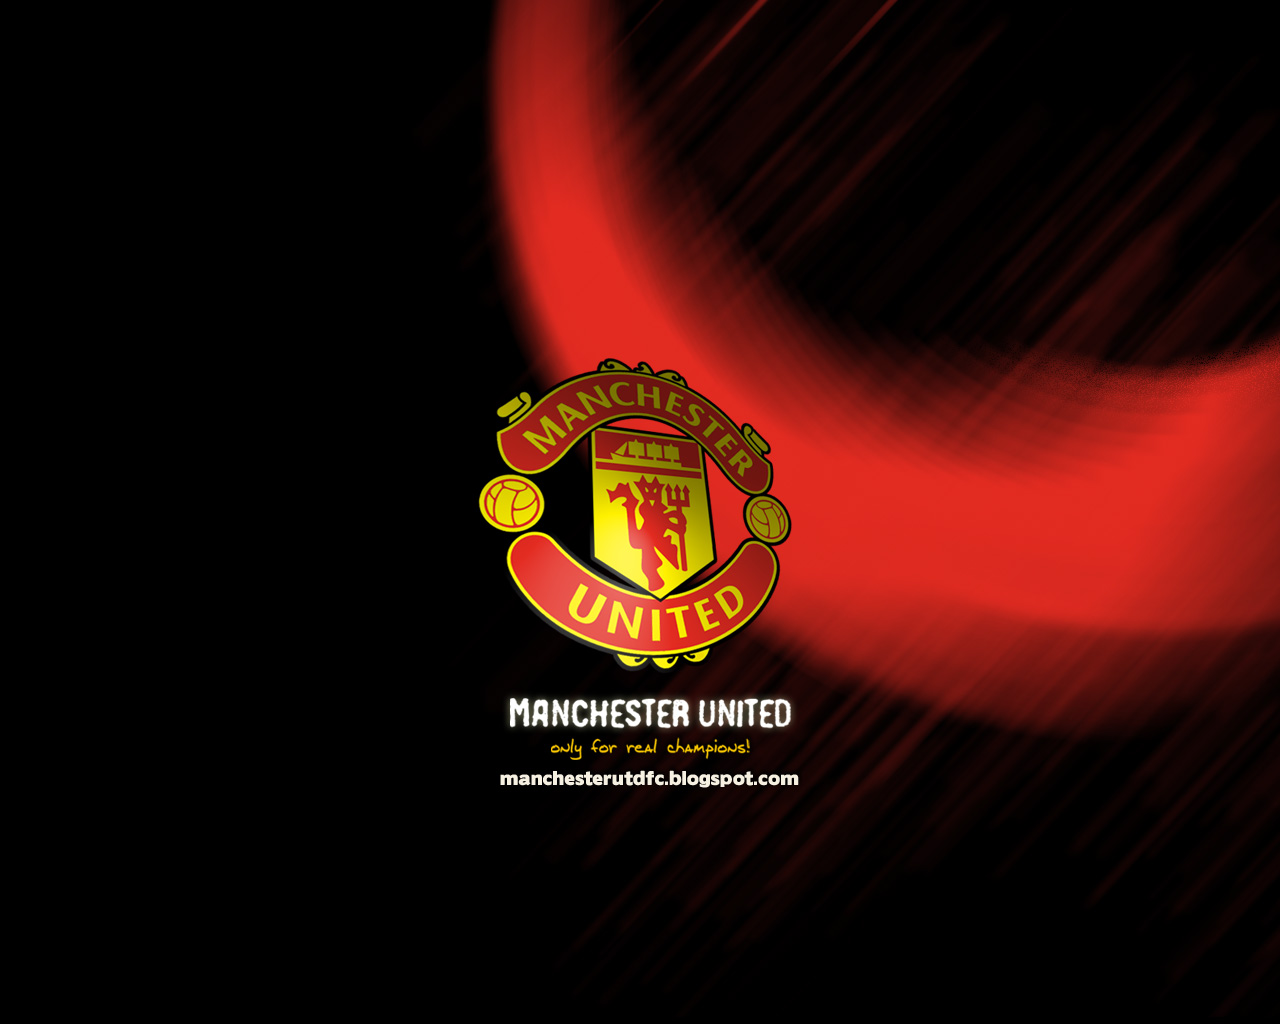 Manchester United Manchester United Wallpapers 1280x1024